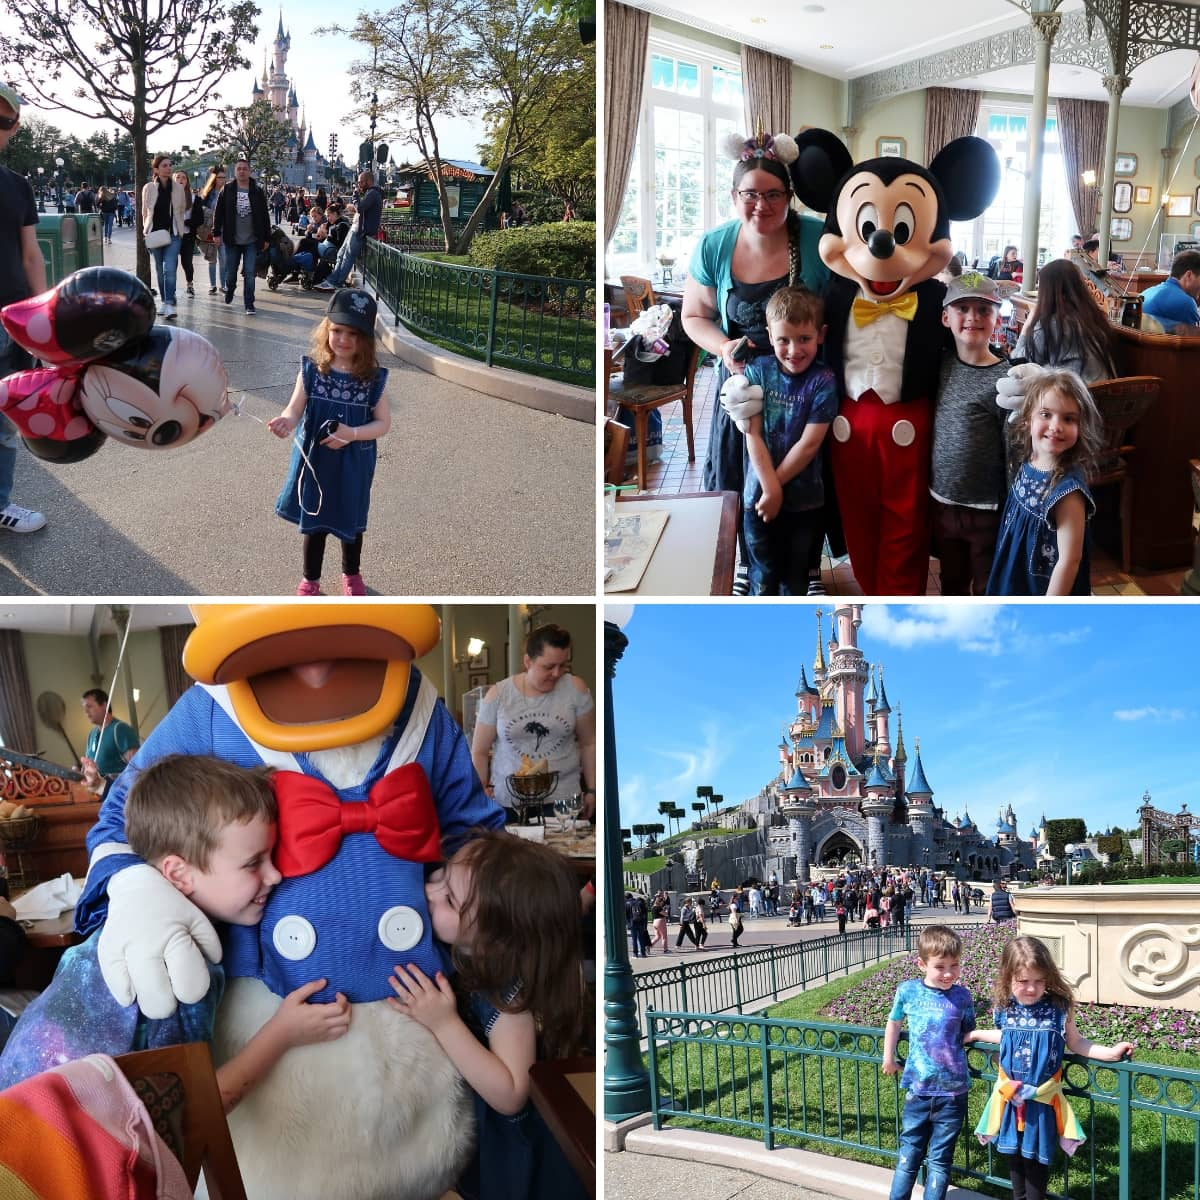 A collage of pictures from Disneyland Paris, inclusing in front of the castle and meeting mickey mouse